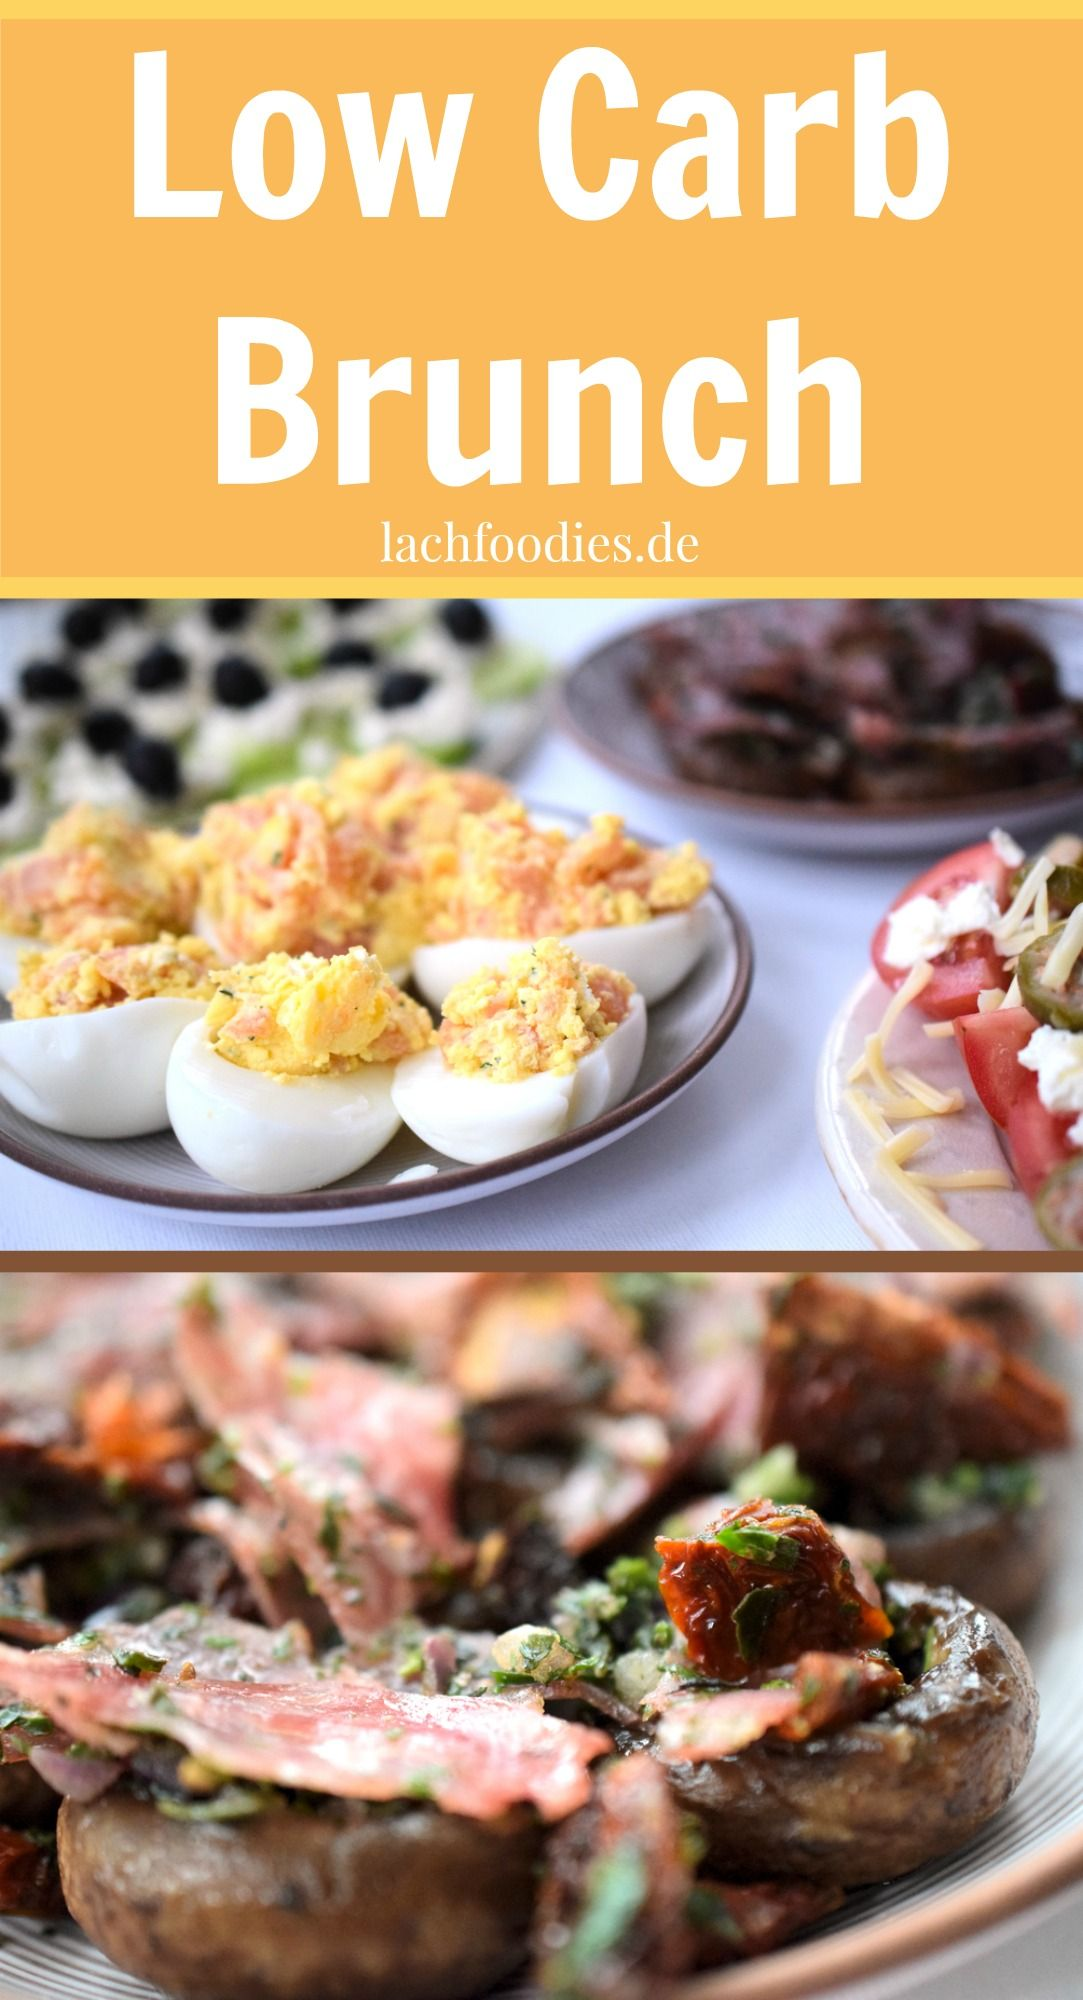 low carb brunch rezepte ich liebe foodblogs brunch fr hst ck und brunch rezepte. Black Bedroom Furniture Sets. Home Design Ideas